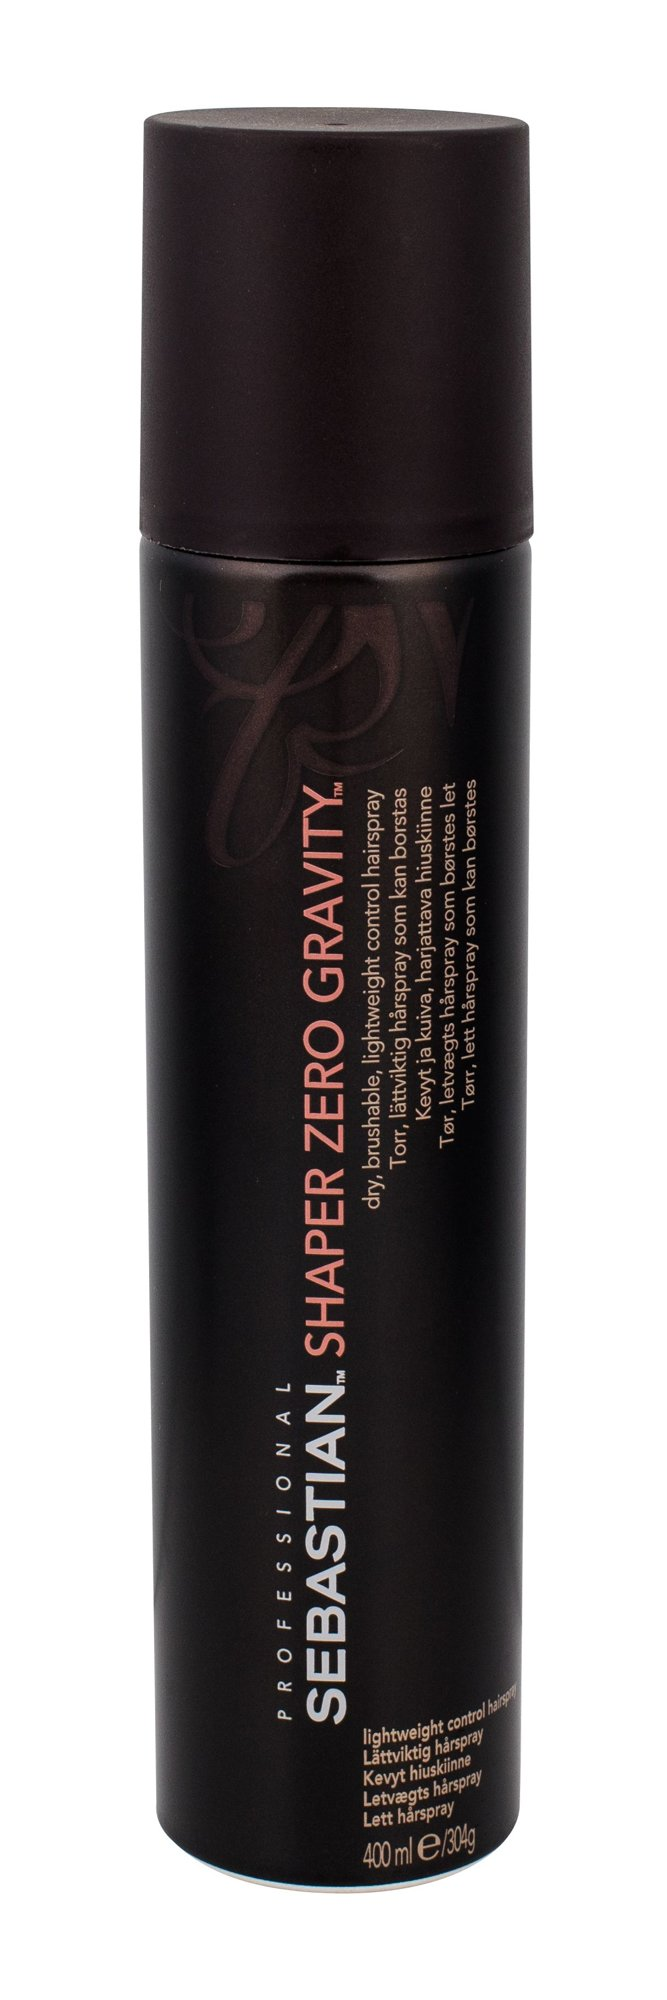 Sebastian Professional Shaper Zero Gravity Cosmetic 400ml